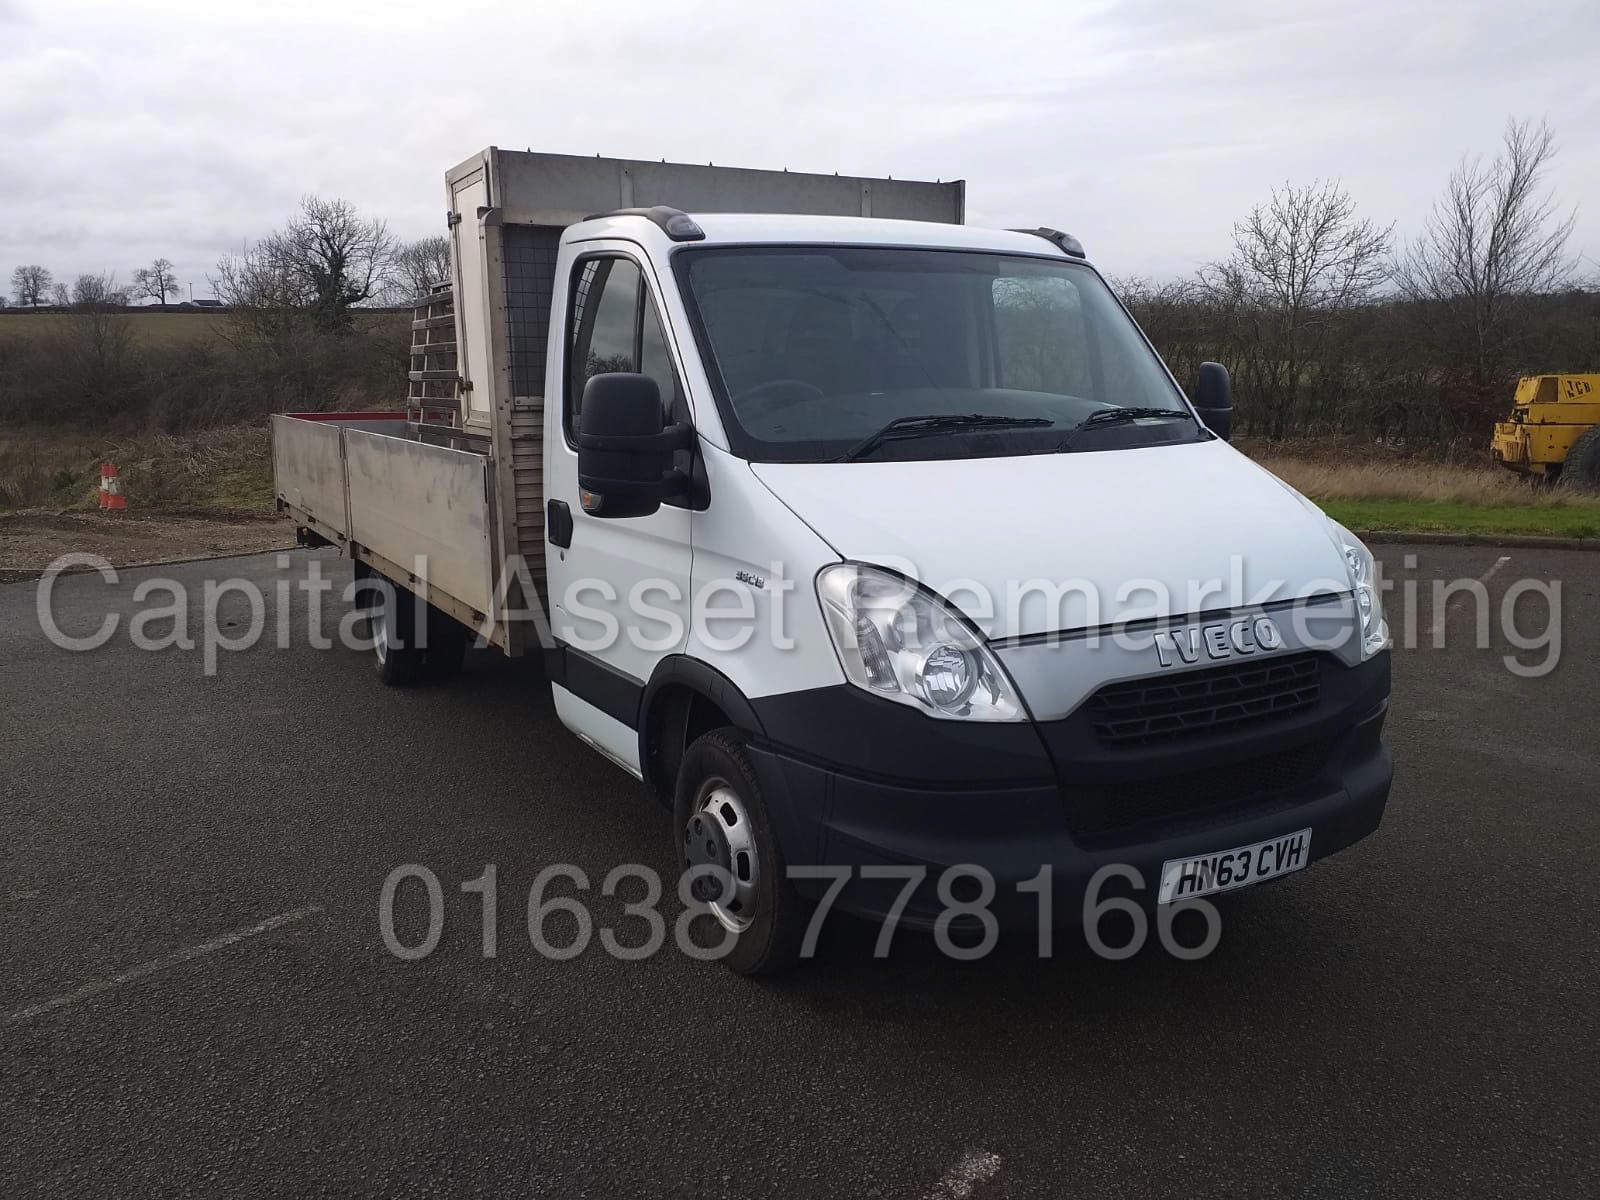 IVECO DAILY 35C13 *XLWB - ALLOY DROPSIDE* (2014 MODEL) '2.3 DIESEL - 127 BHP - AUTOMATIC' (3500 KG) - Image 3 of 20